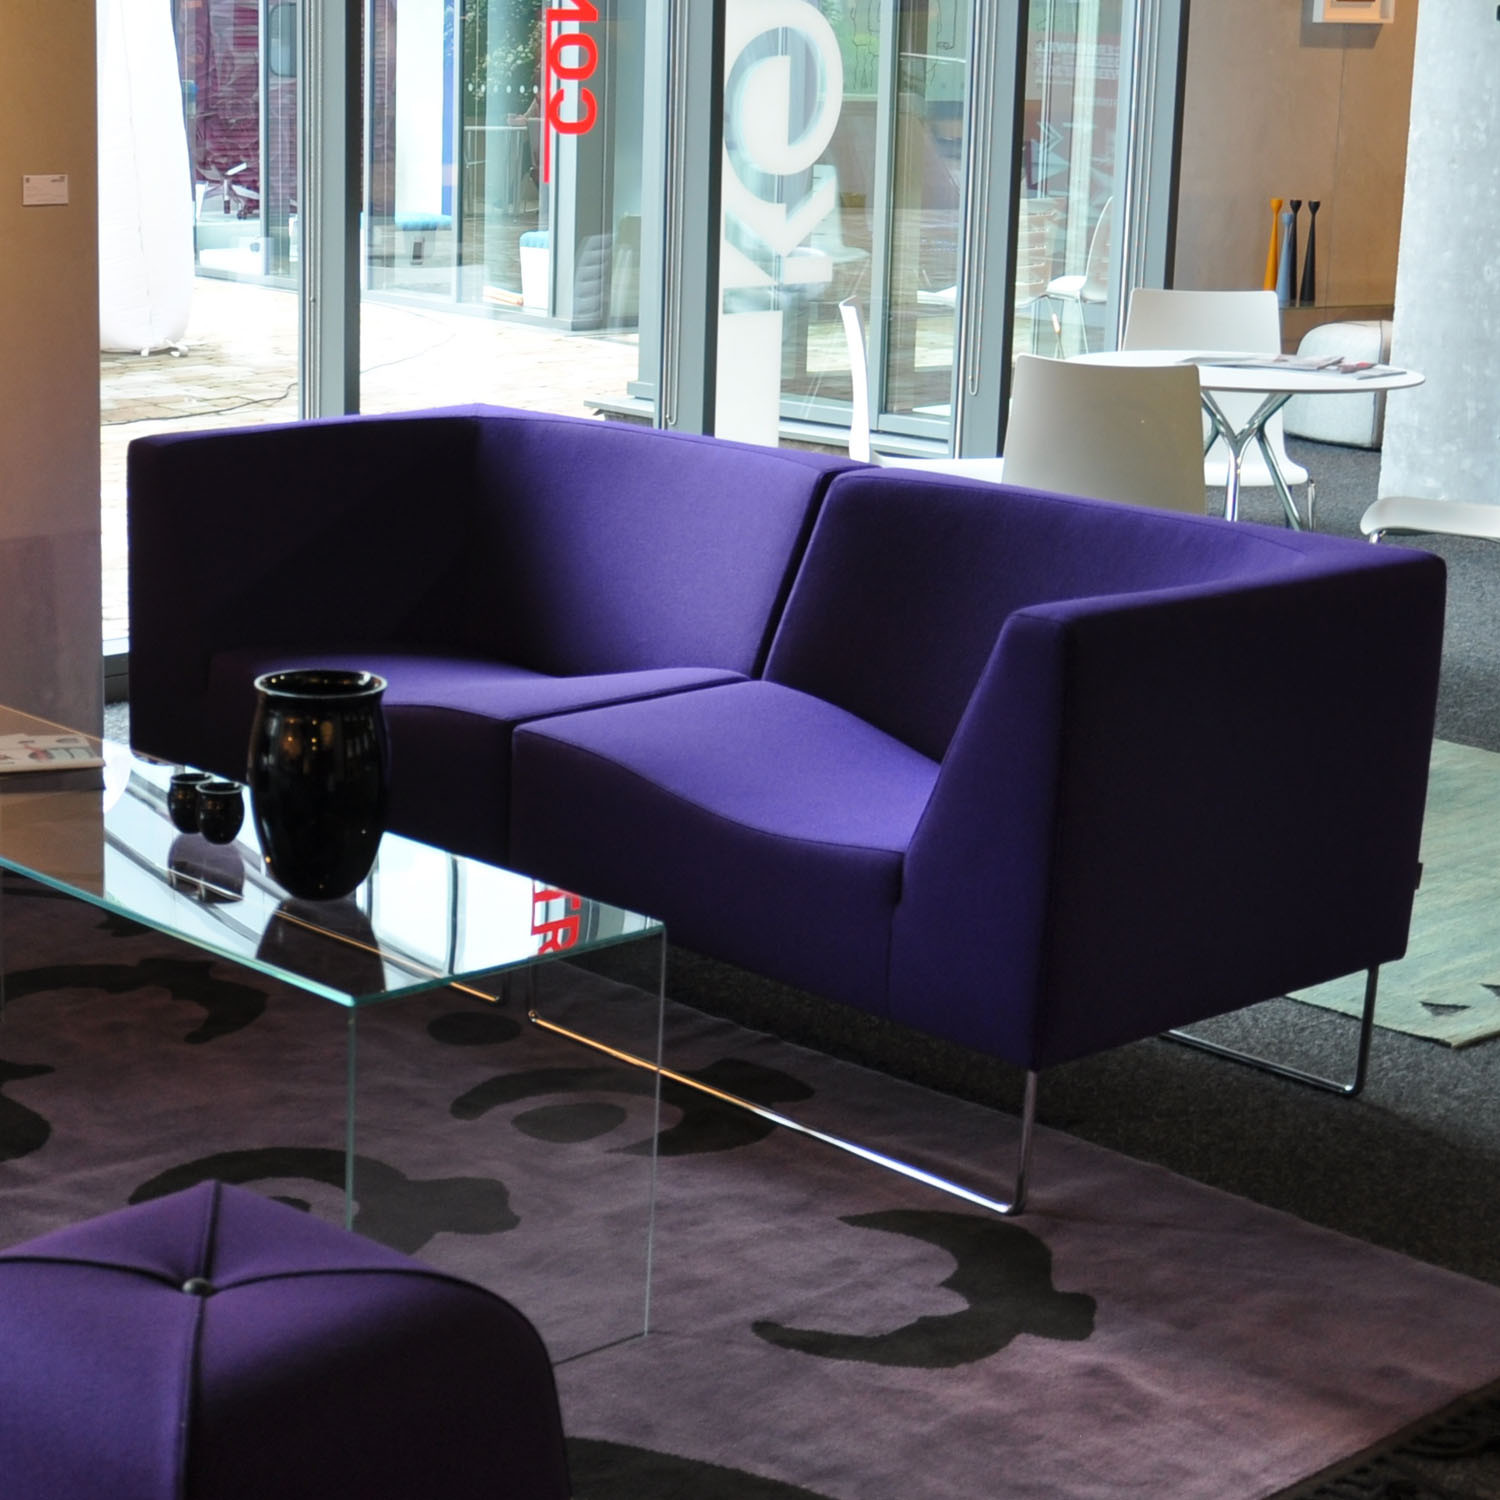 Opera Modular Lounge Seating